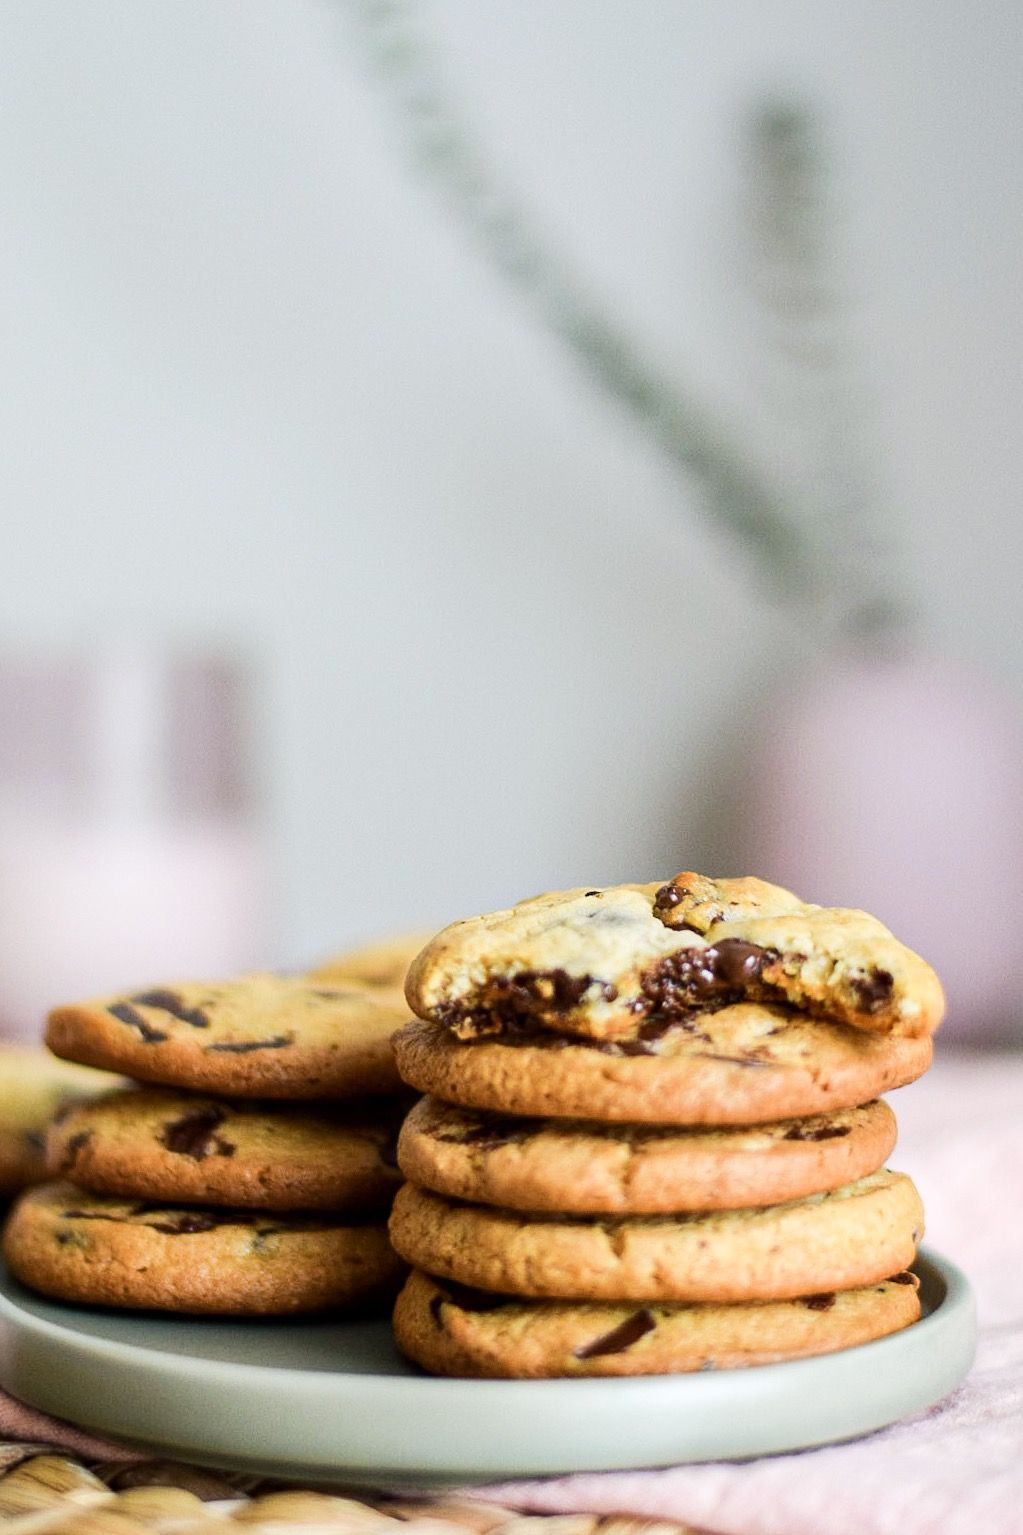 Miso Sesame Chocolate Chip Cookies Chocolate Chip Cookies Chip